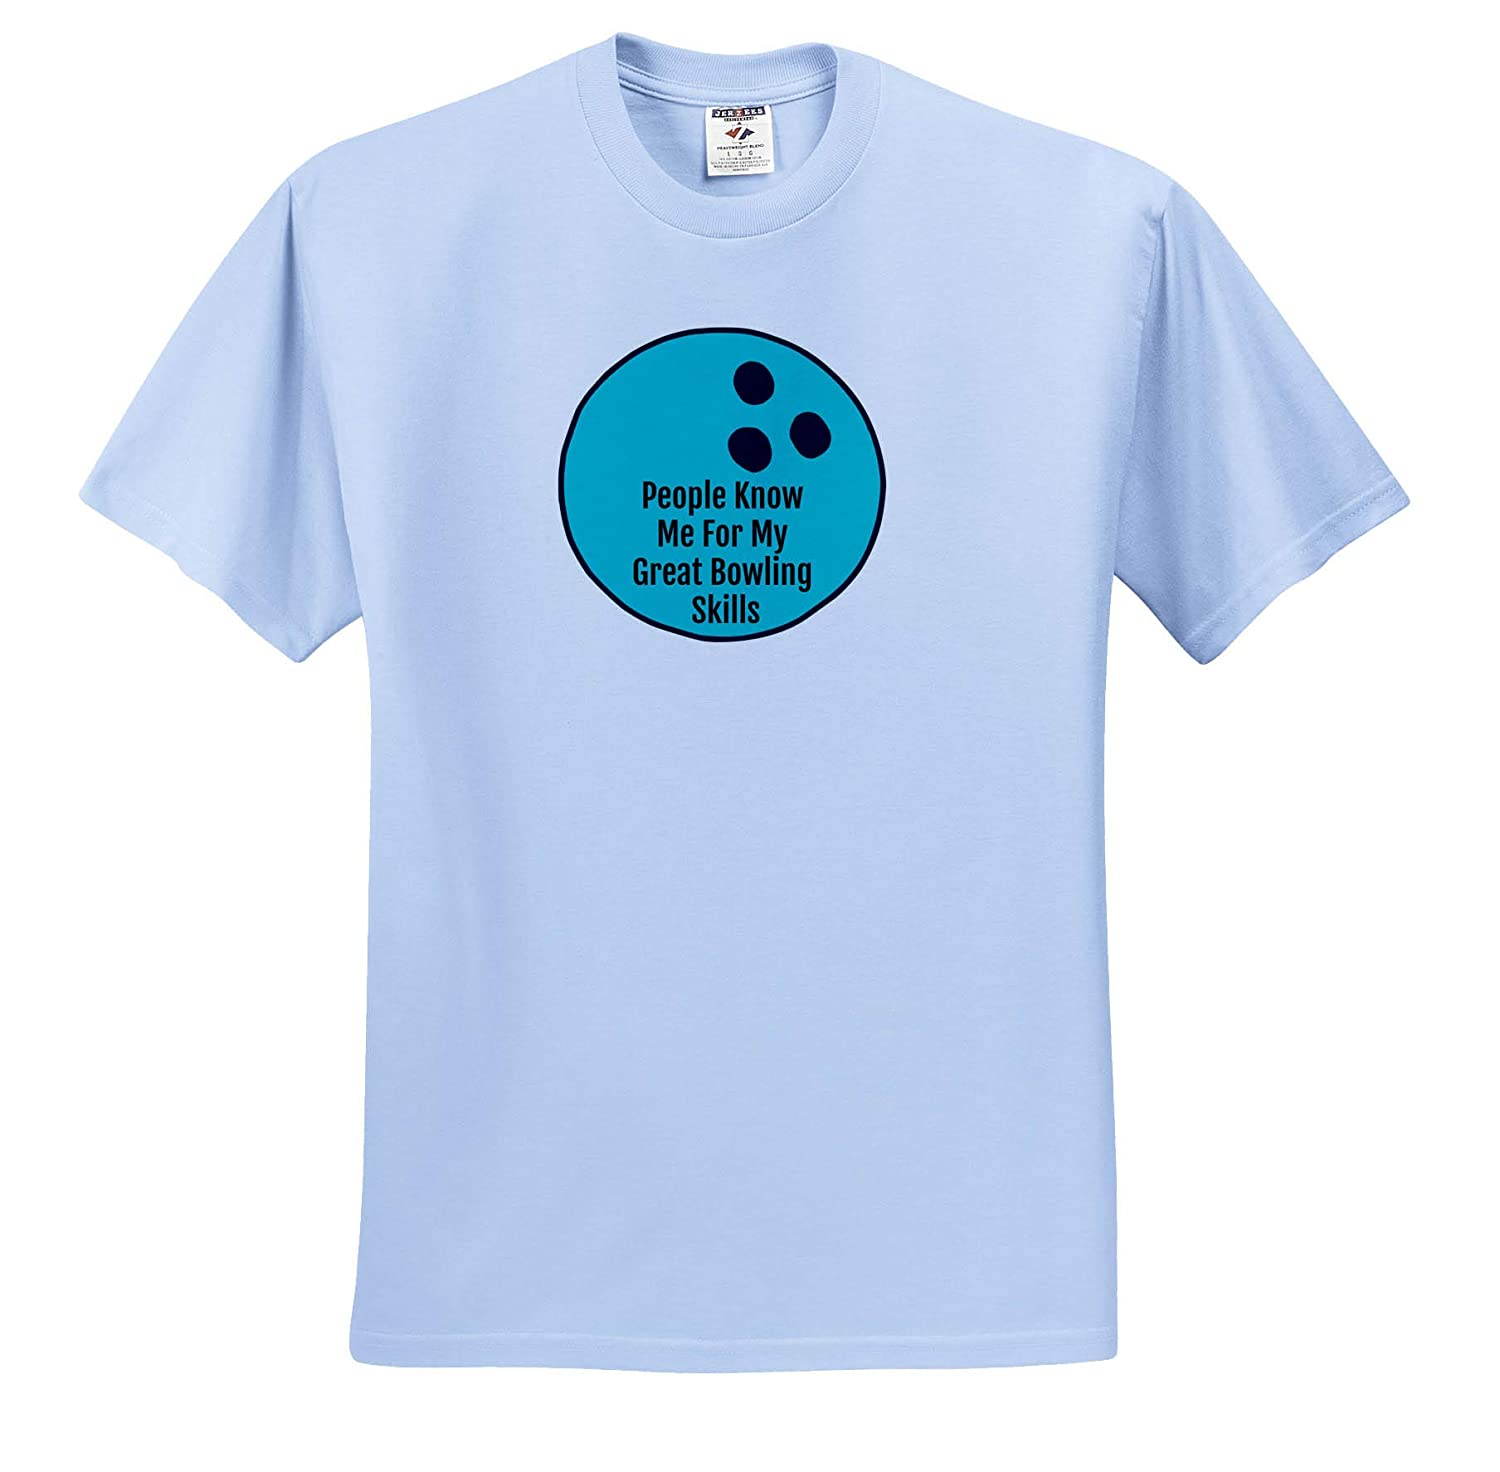 ts/_321056 3dRose Carrie Quote Image Adult T-Shirt XL Image of Bowling Quote People Know me for My Great Bowling Skills